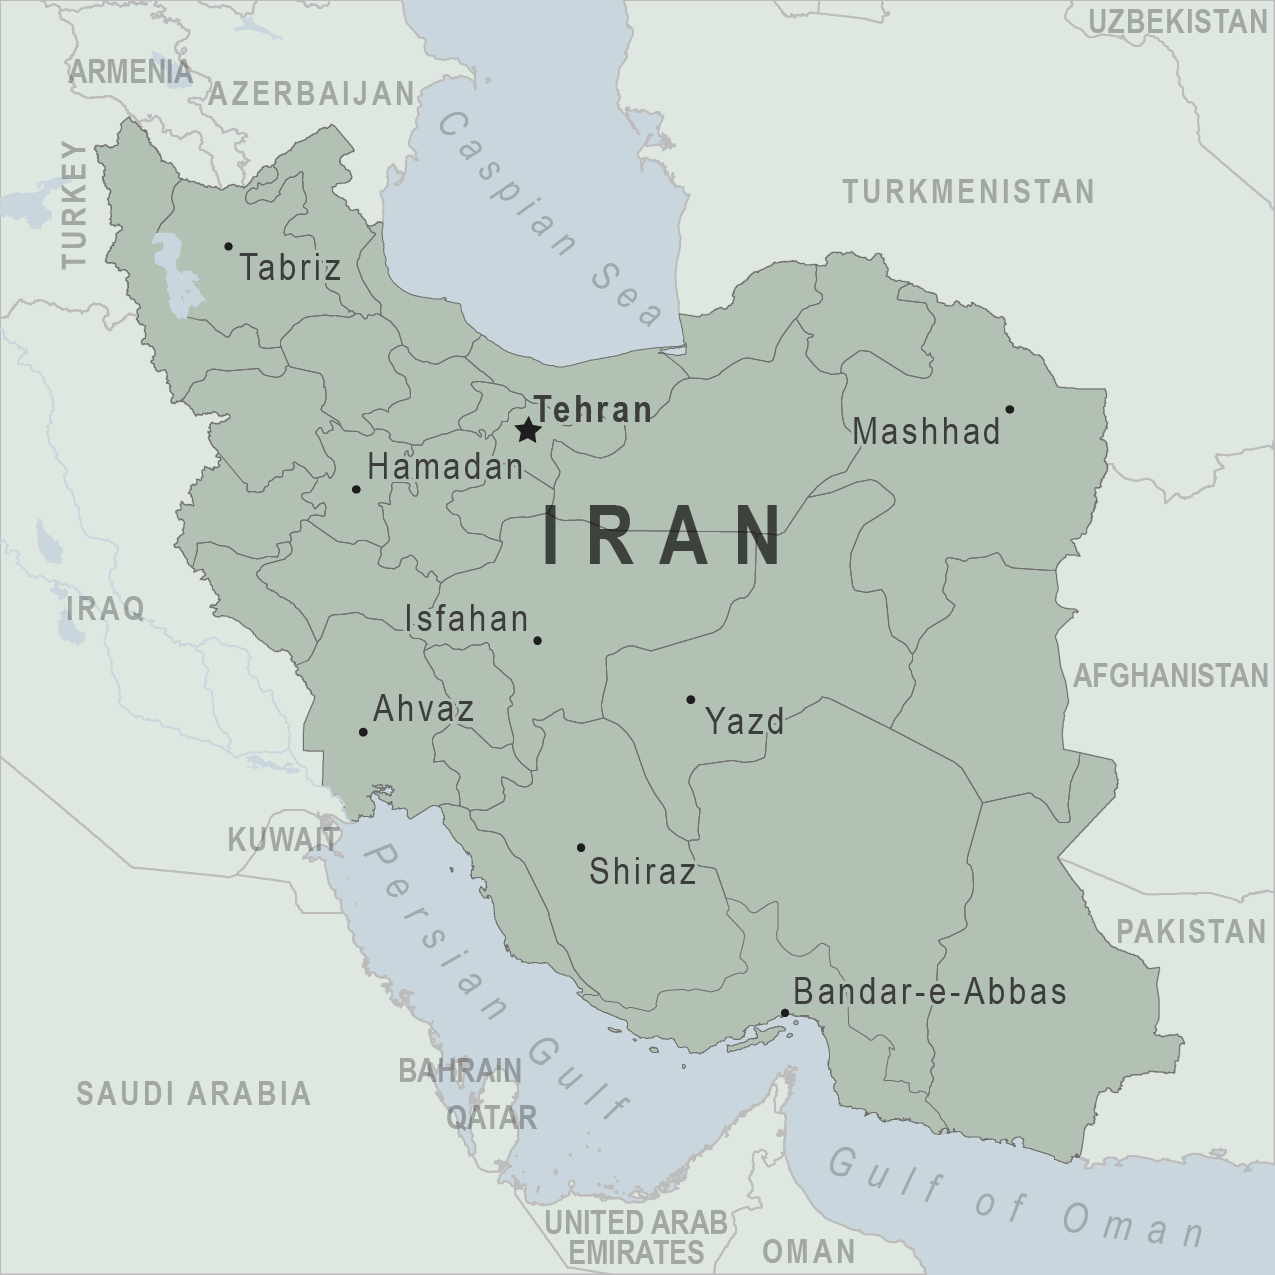 https://i1.wp.com/wwwnc.cdc.gov/travel/images/map-iran.png